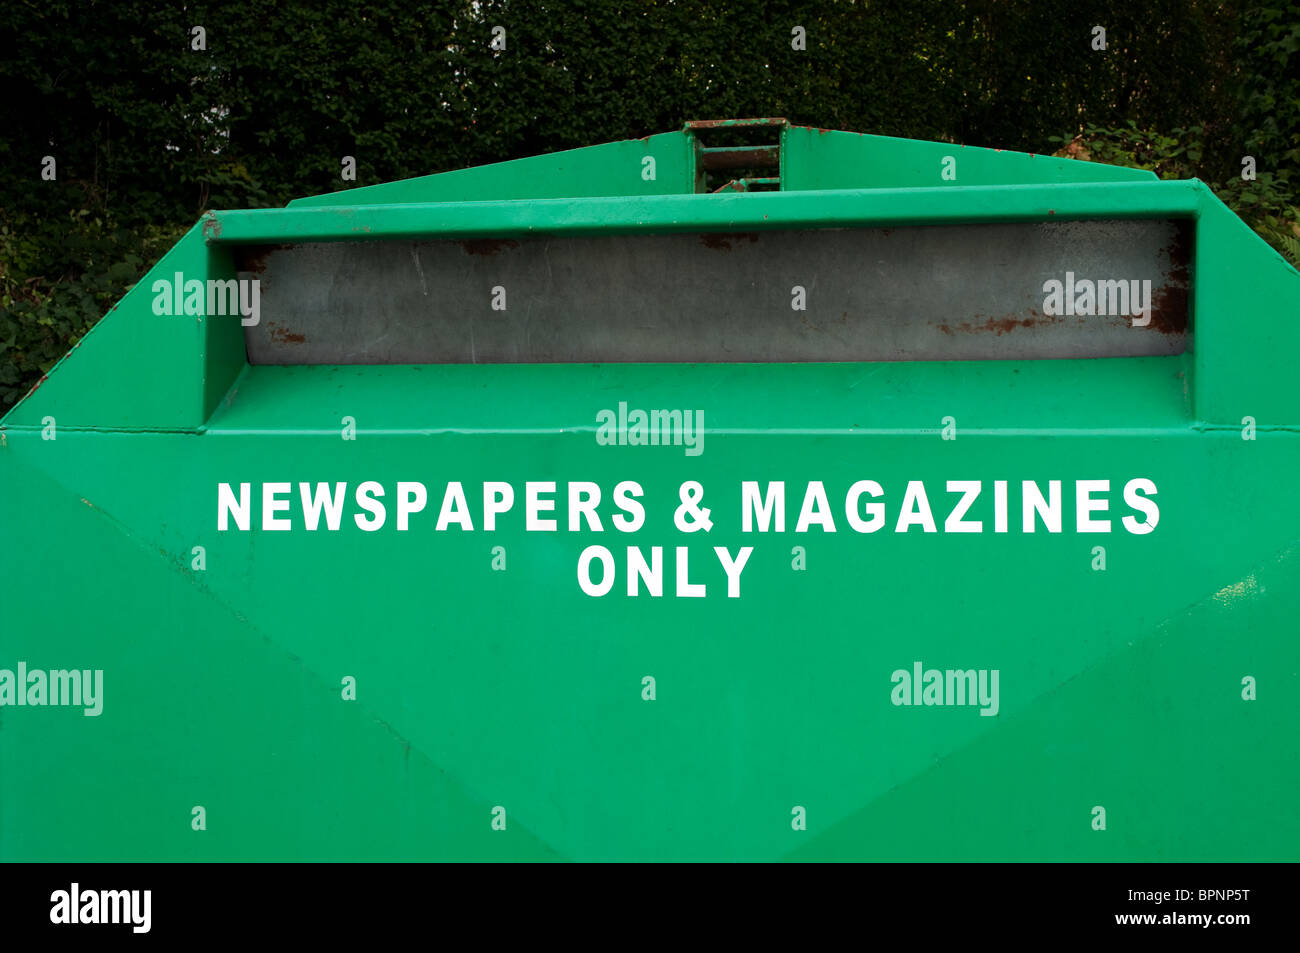 a recycling bin for magazines and newspapers, uk - Stock Image